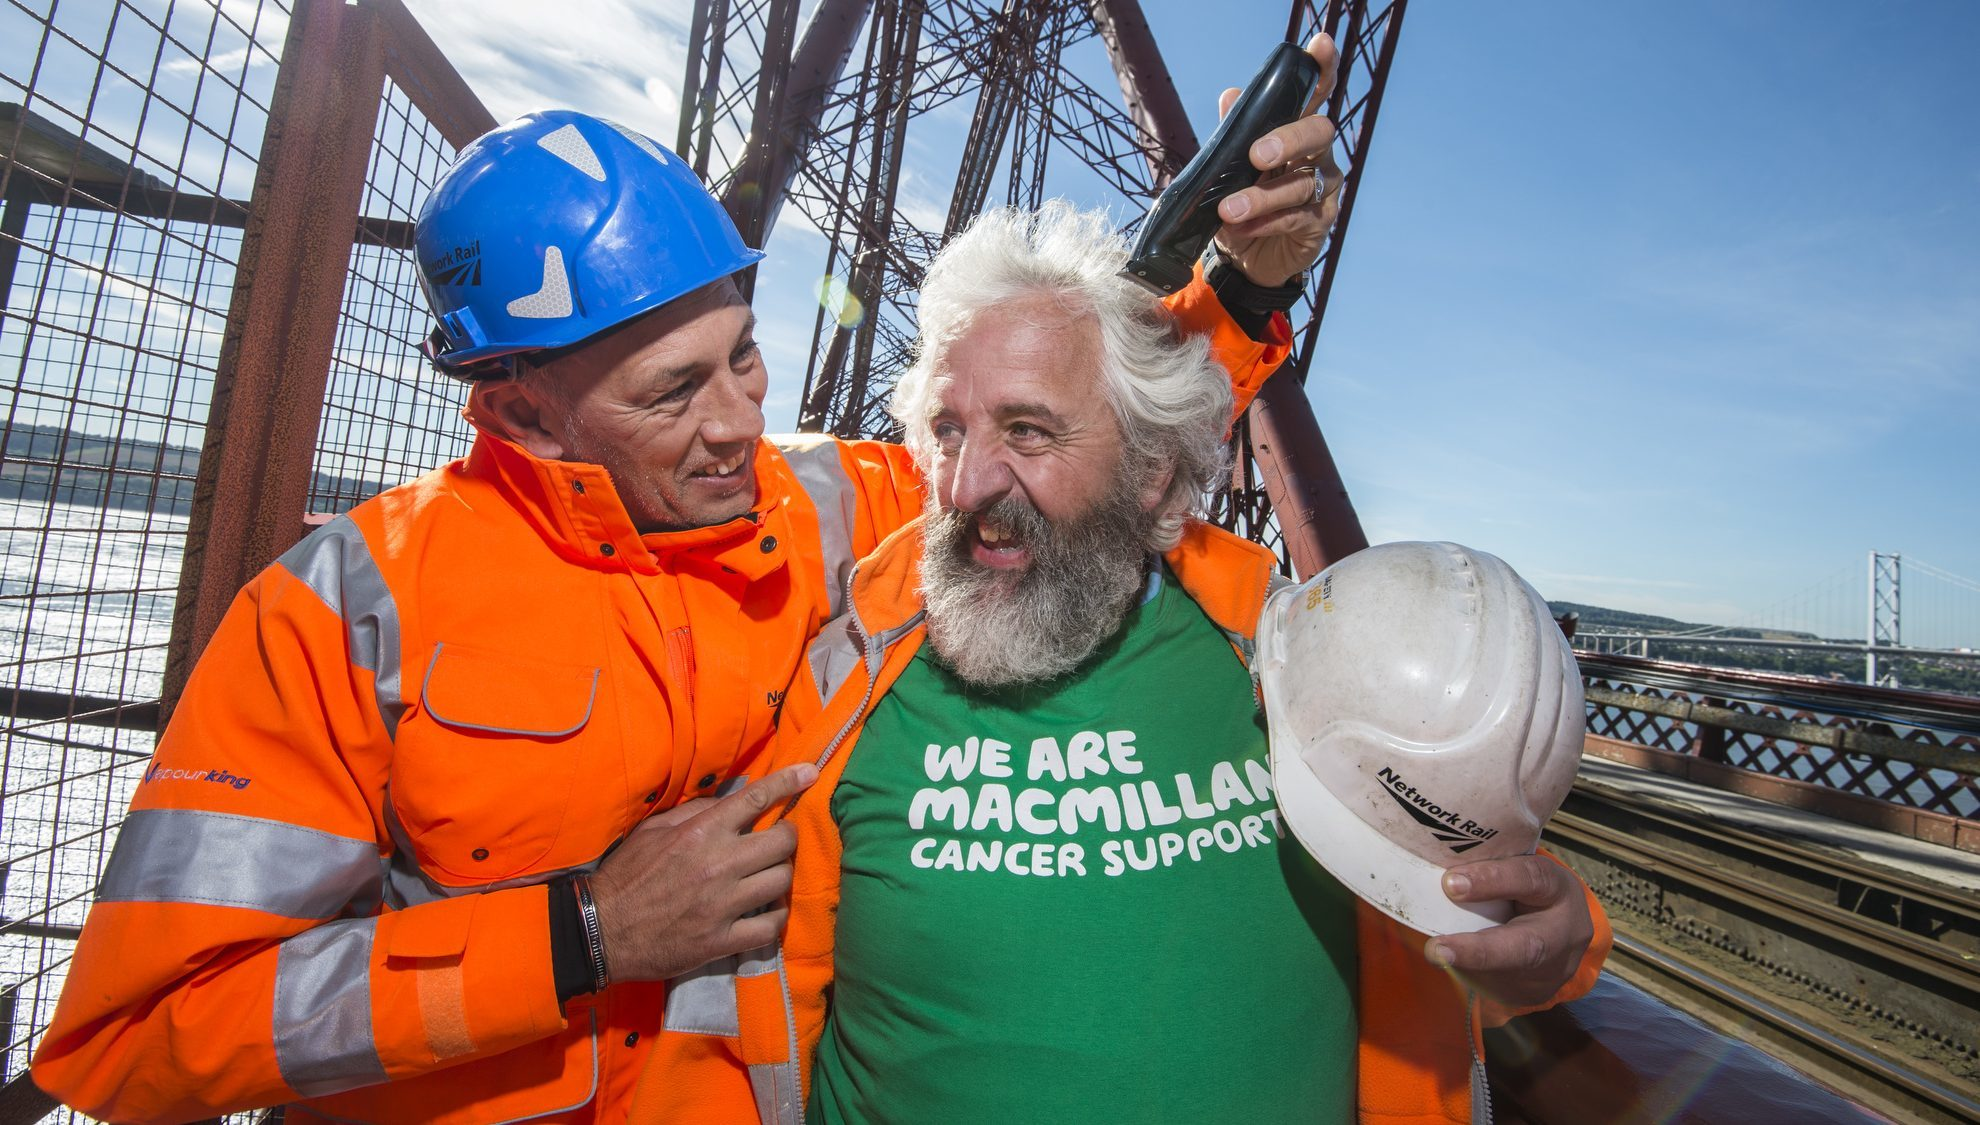 Network Rail employee Davie O'Donnell had a close shave with Rangers legend Mark Hateley on top of the Forth Rail Bridge.